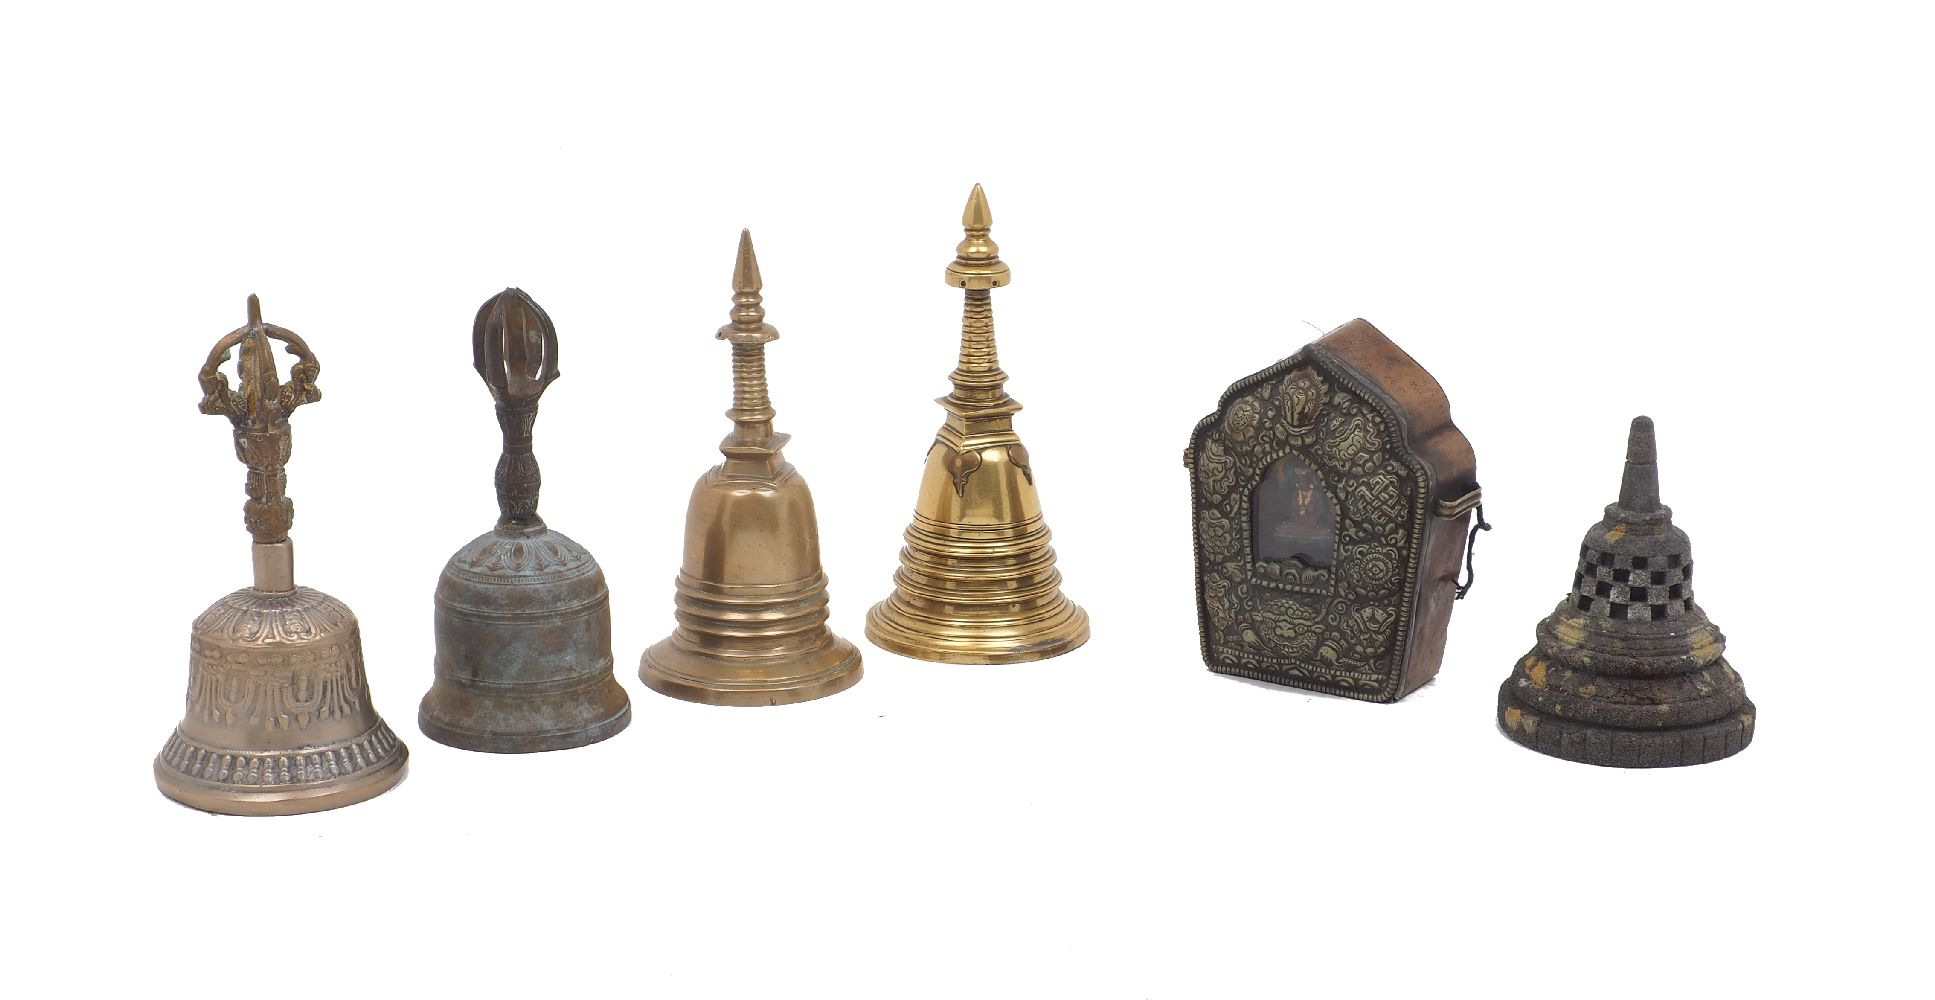 A Tibetan twin handled gau, with repousse metal front and copper body, 12cm high, together with four